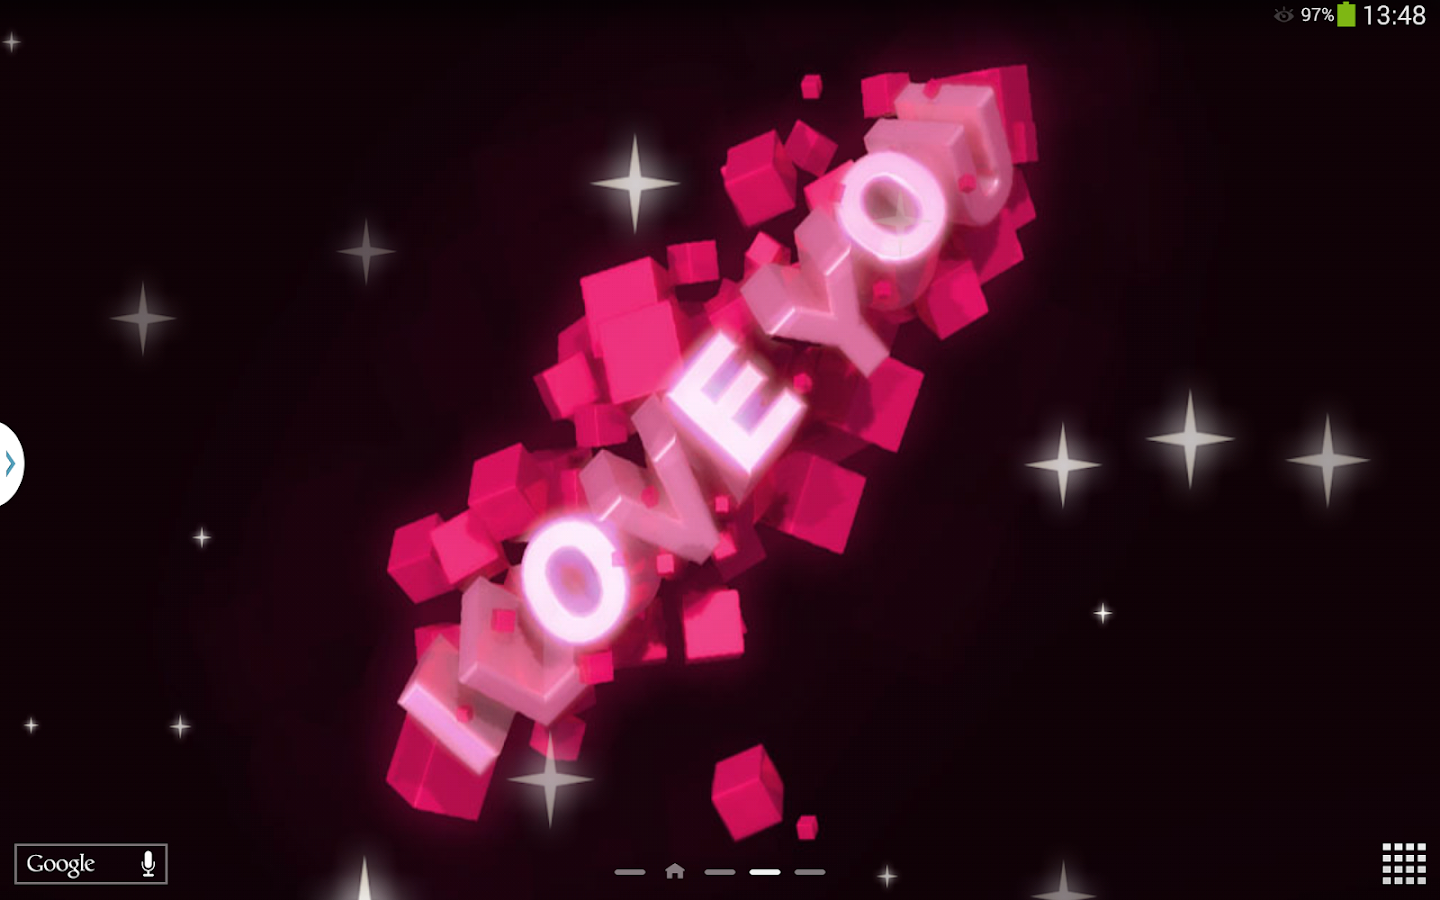 I Love You Live Wallpaper - Android Apps on Google Play